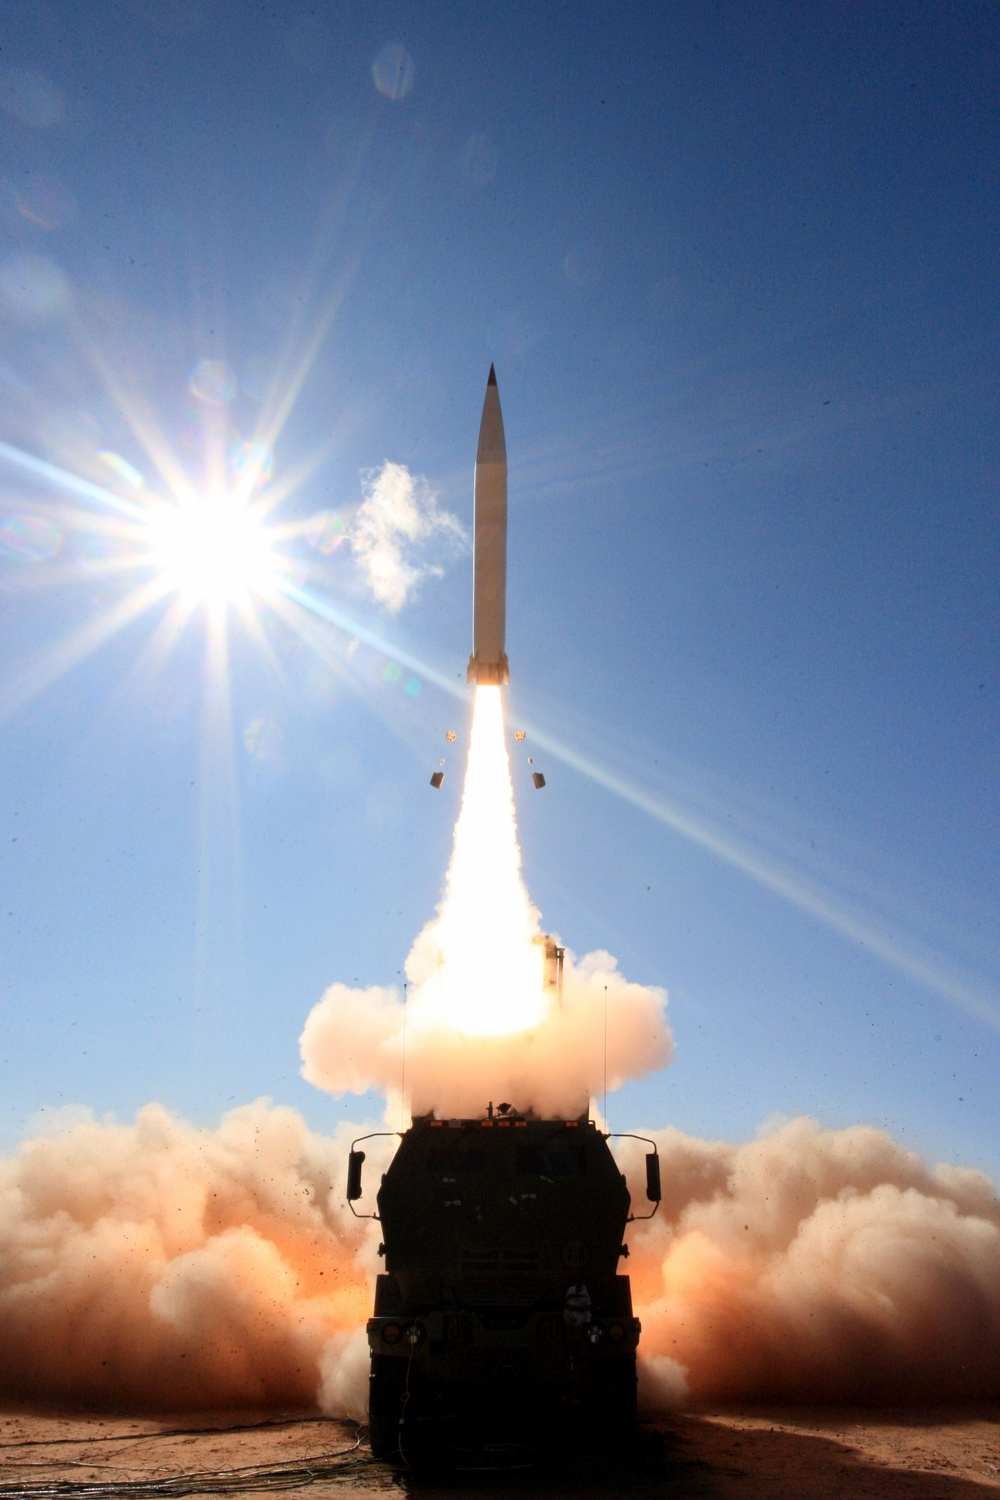 Precision Strike Missile Fires from a HIMARS Launcher